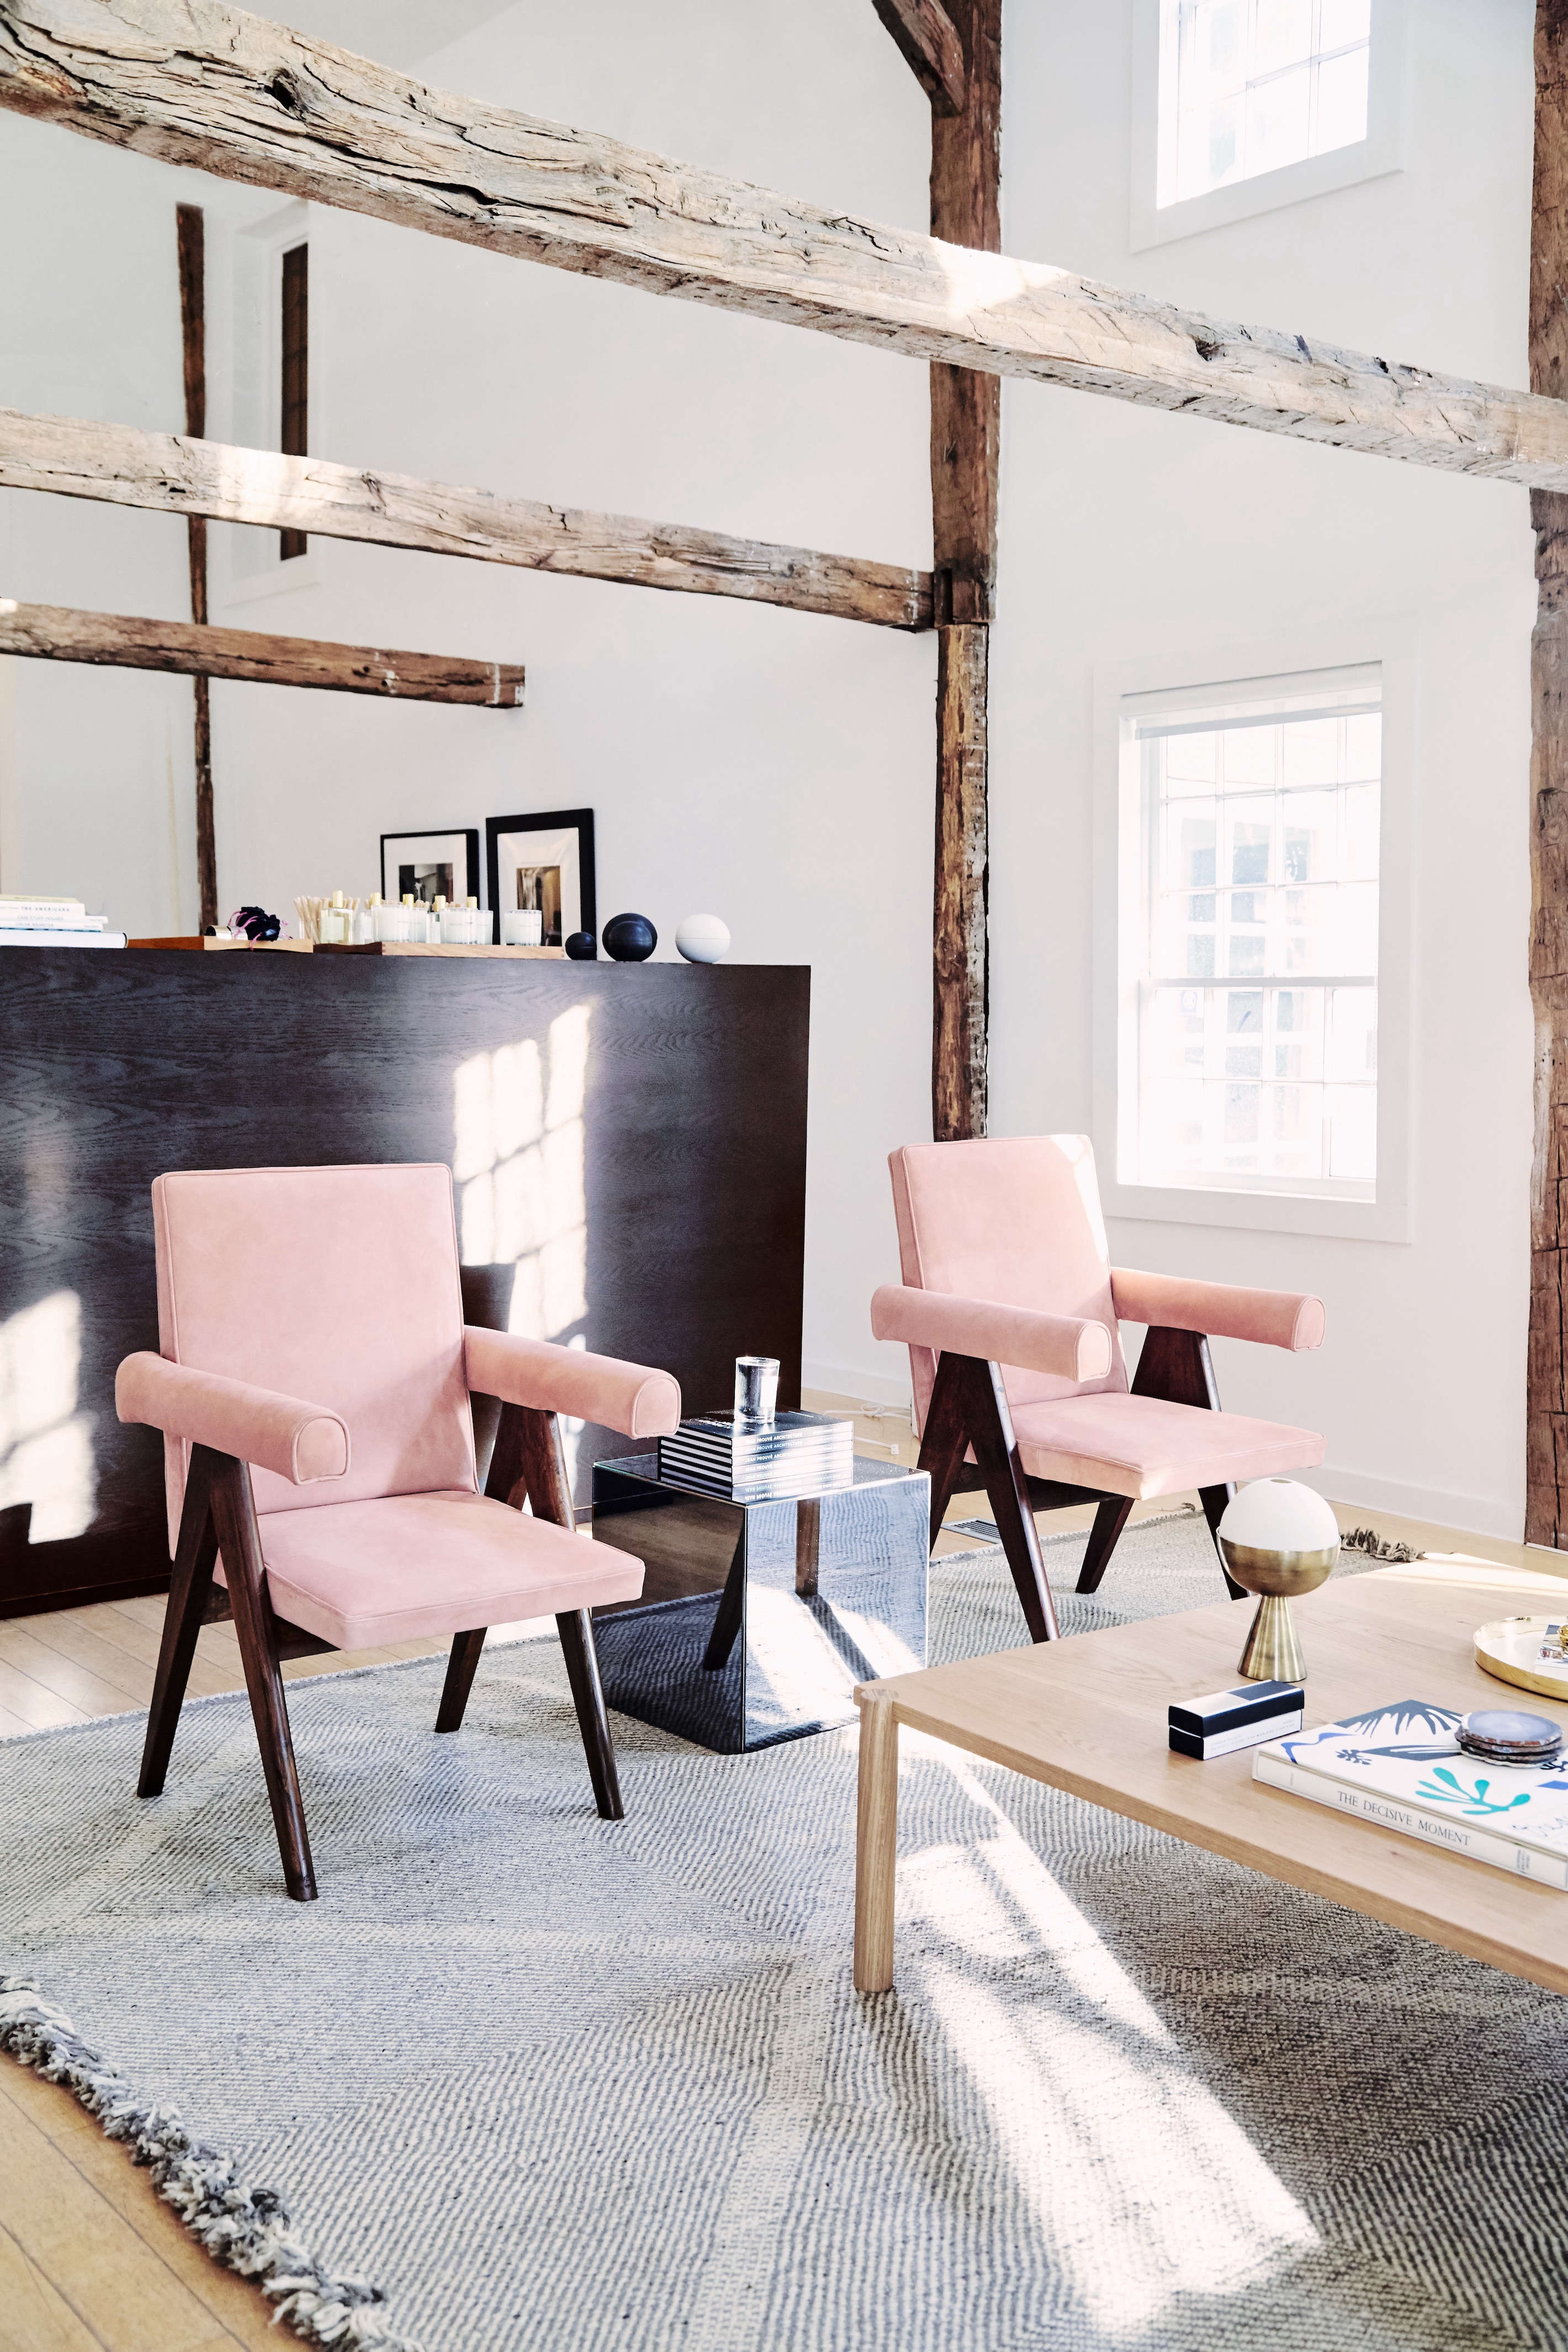 pierre jeaneret 1954 armchairs at the line amagansett | remodelista 10